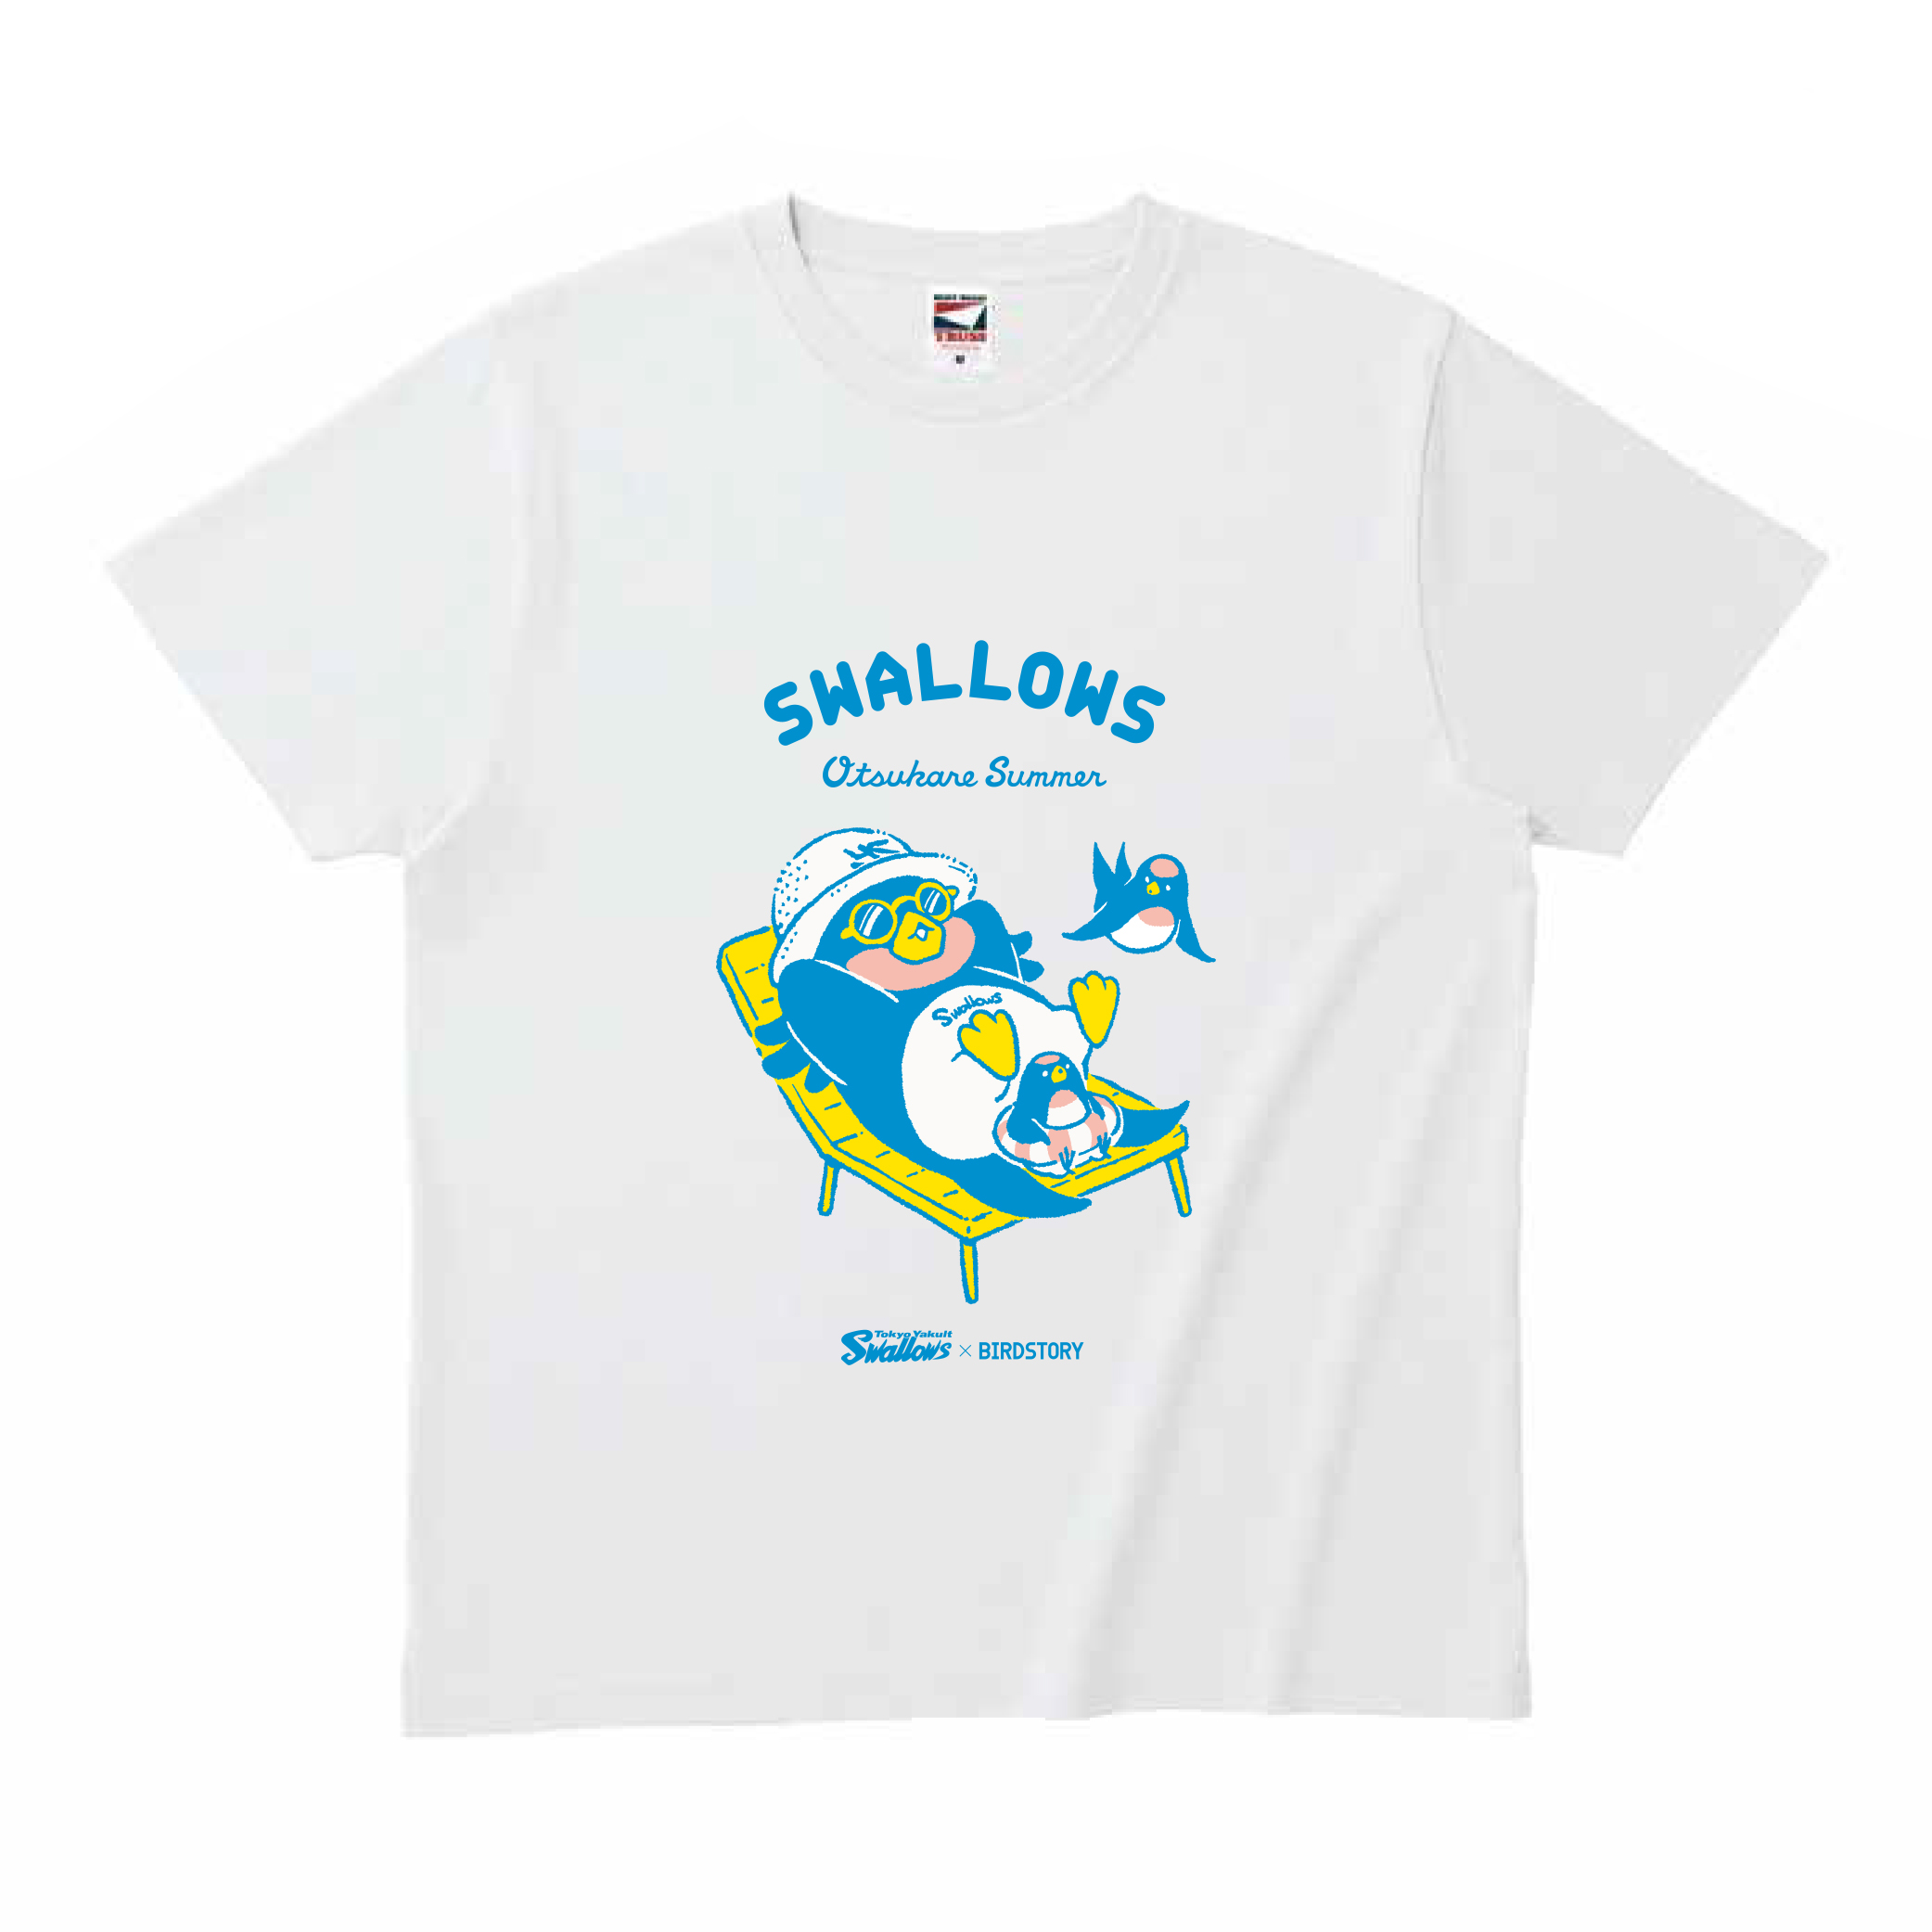 SWALLOWS×BIRDSTORY (ビーチ) Tシャツ